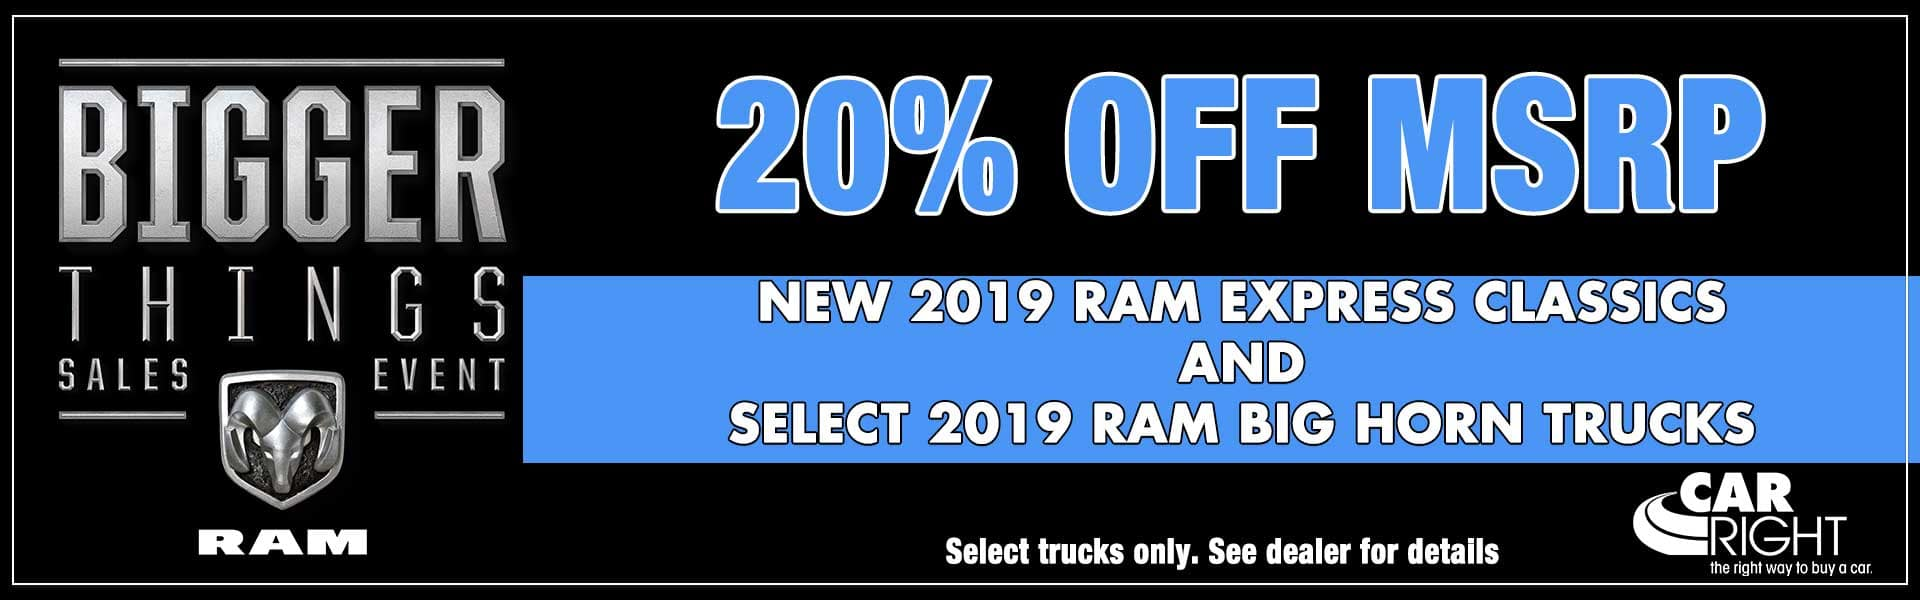 CarRight Chrysler Jeep Dodge Ram Fuso. Moon Township, PA. New, Used, parts, accessories, service. The right way to buy a car. 20% off select 2019 Ram Express and Big Horn trucks